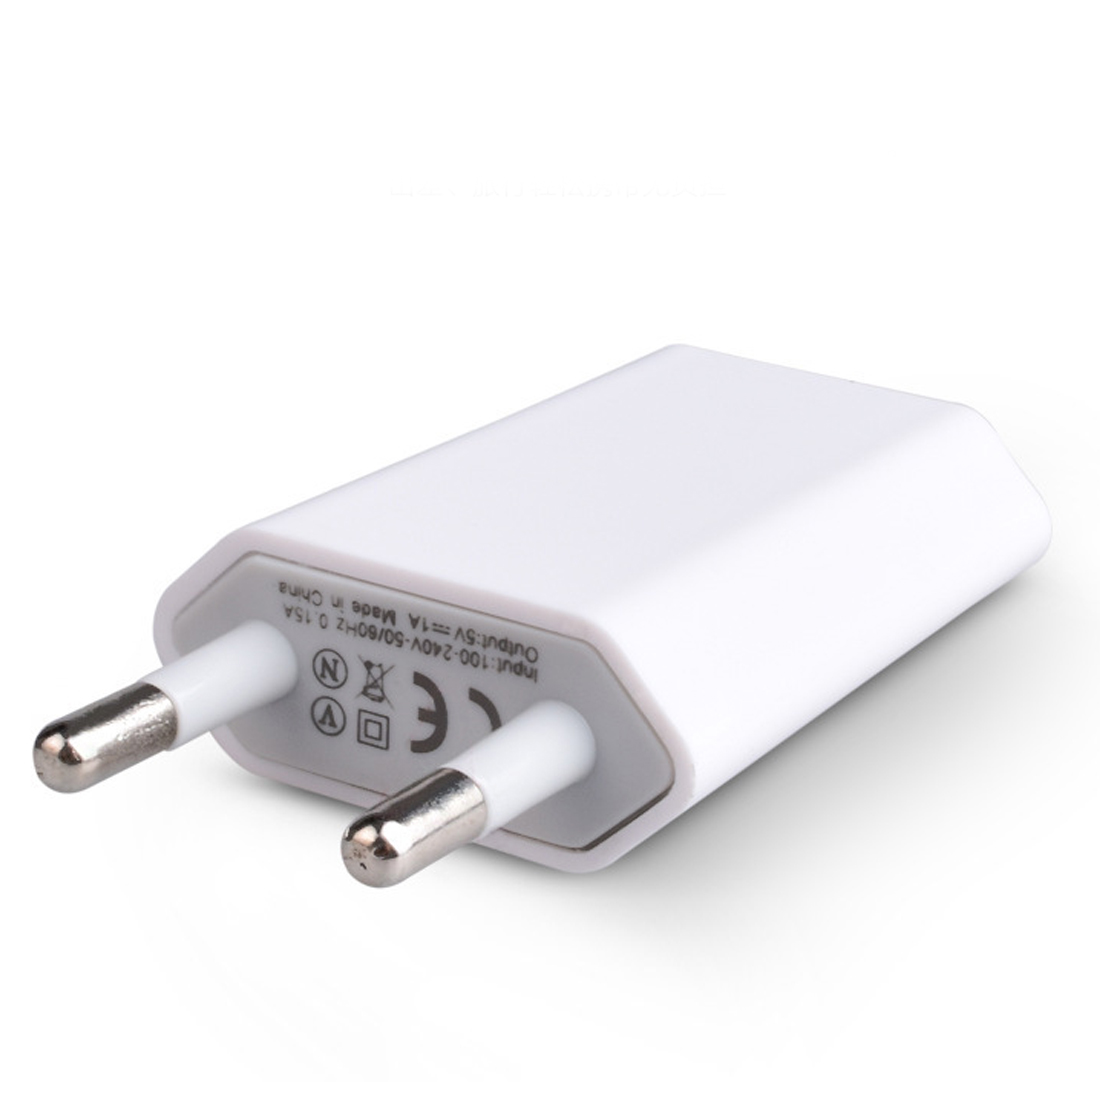 Etmakit Universal EU Plug USB Power Home Wall Charger